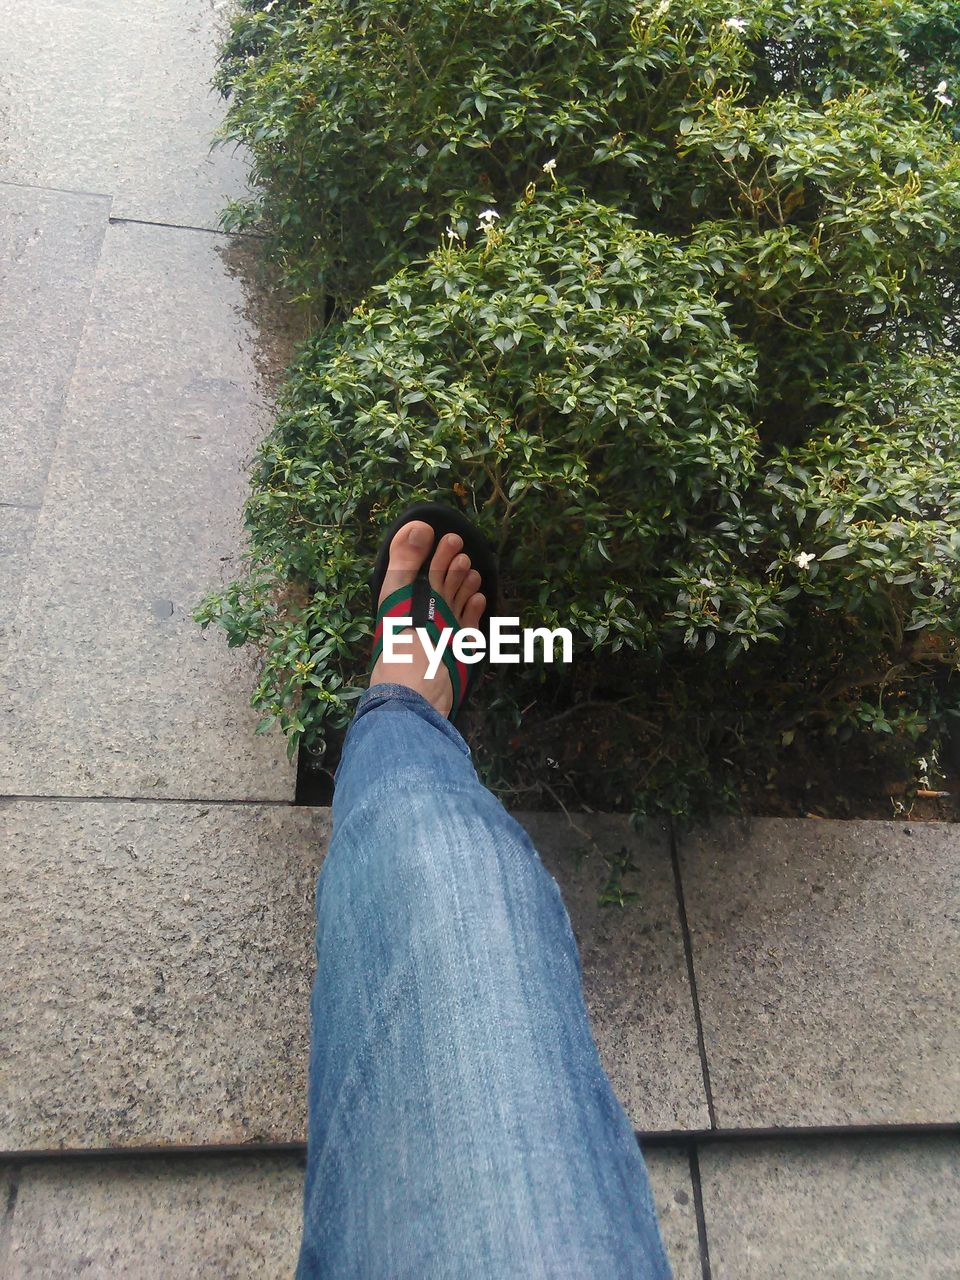 human leg, jeans, one person, low section, human body part, shoe, personal perspective, growth, real people, day, standing, outdoors, plant, women, men, nature, adult, people